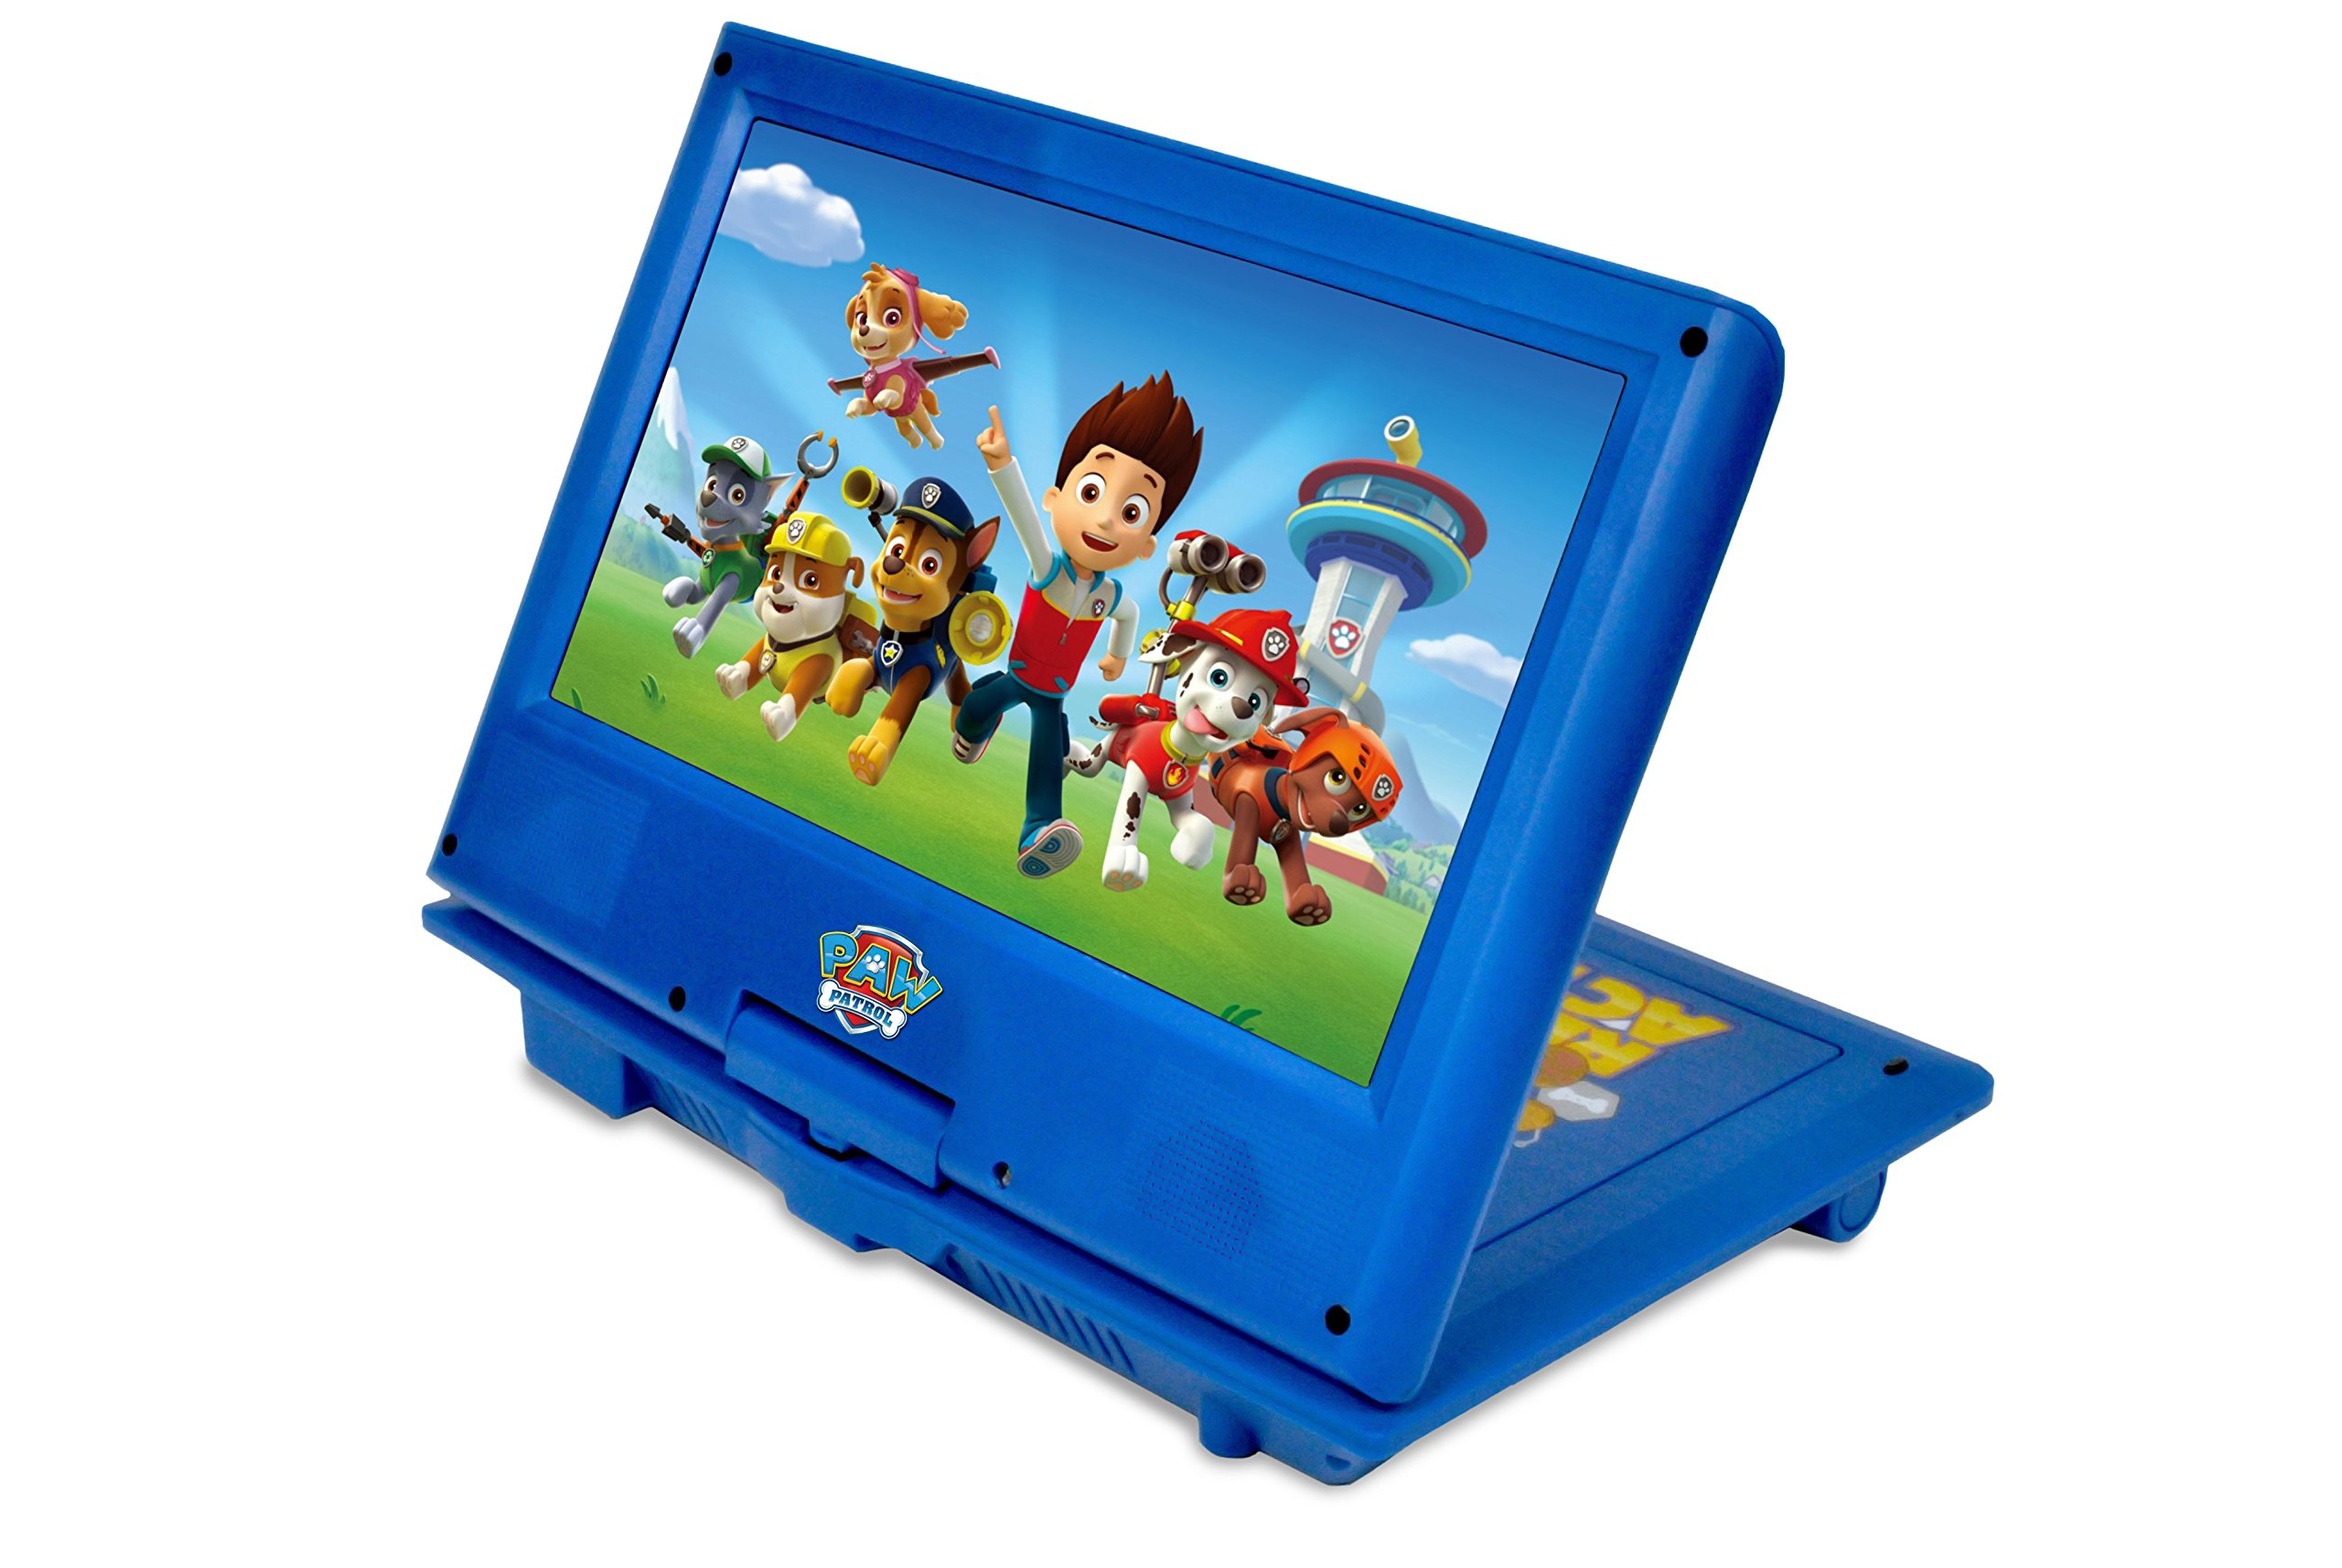 Ematic NPW7221PW Nickelodeons Paw Patrol Theme Portable DVD Player with 9-Inch Swivel Screen, Travel Bag and Headphones, Blue by Ematic (Image #4)